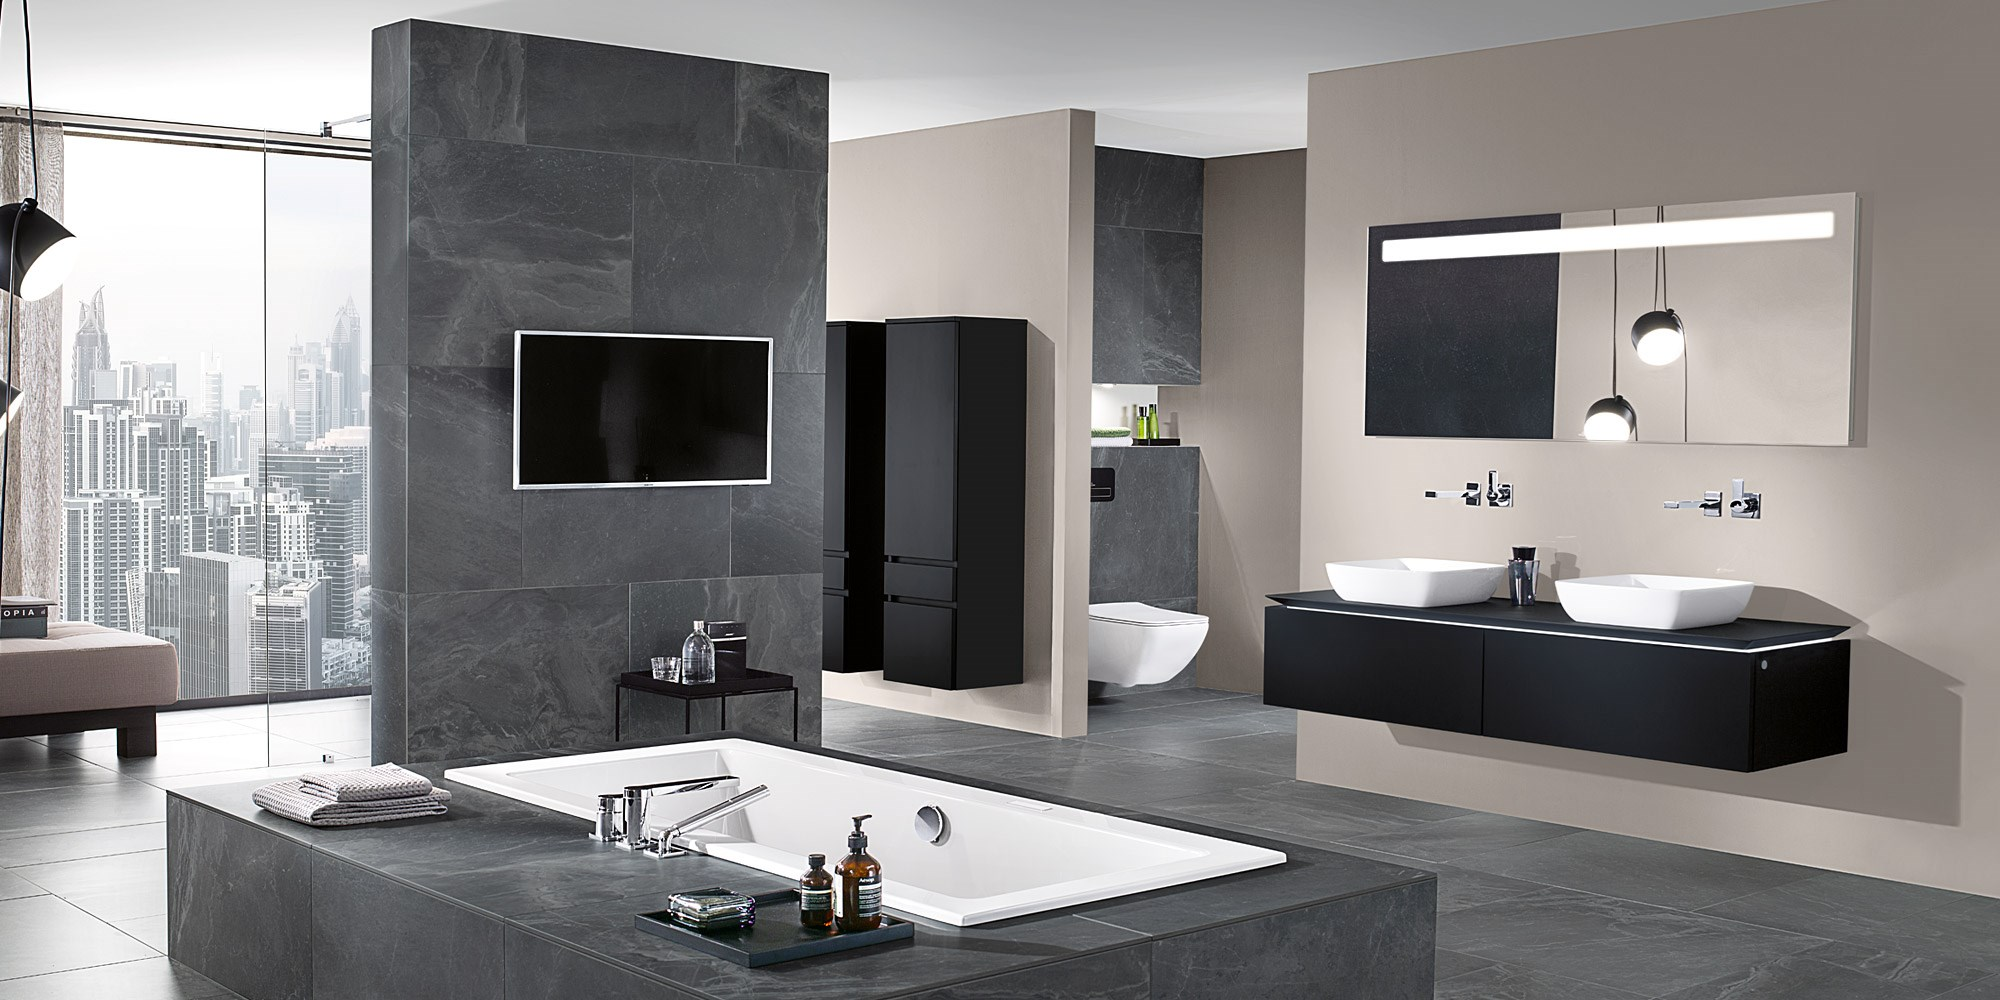 NATURAL STONE TILES from Villeroy & Boch